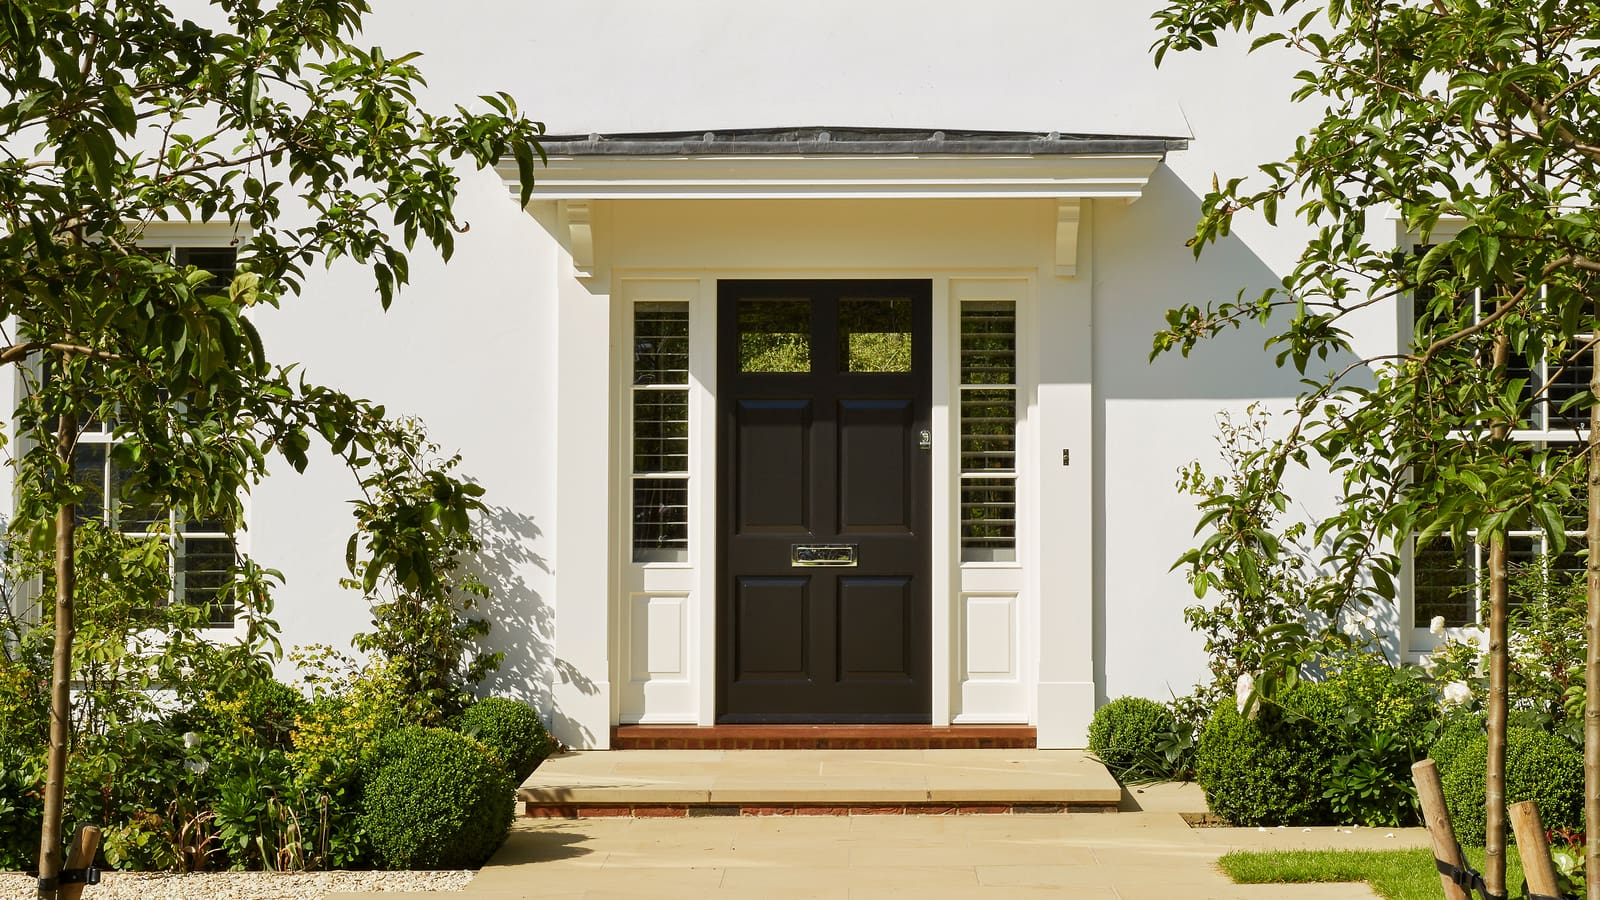 6-panel entrance door and sidelights